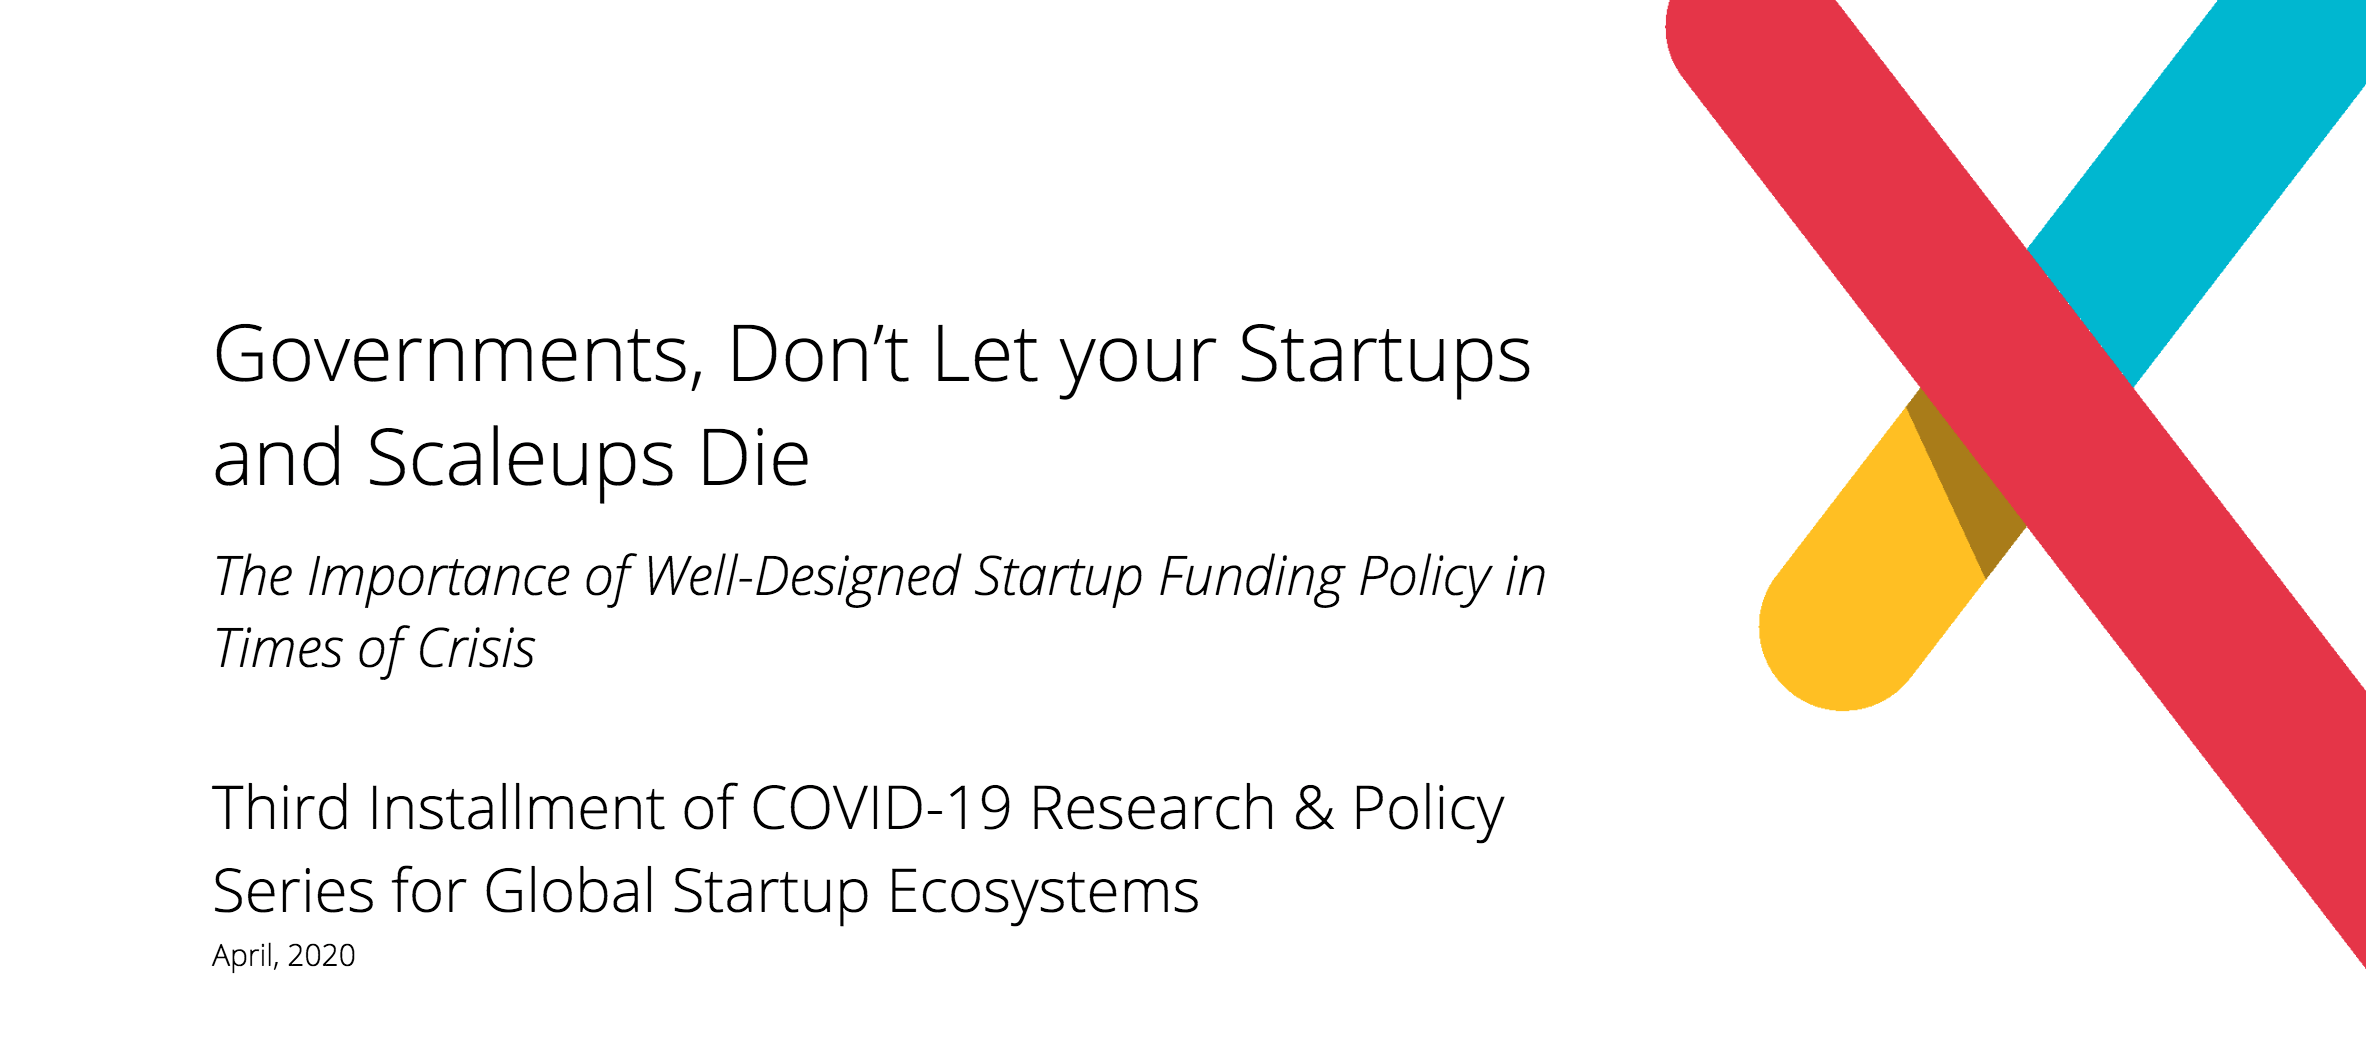 Governments, Don't Let your Startups and Scaleups Die: The Importance of Well-Designed Funding Policy in Times of Crisis